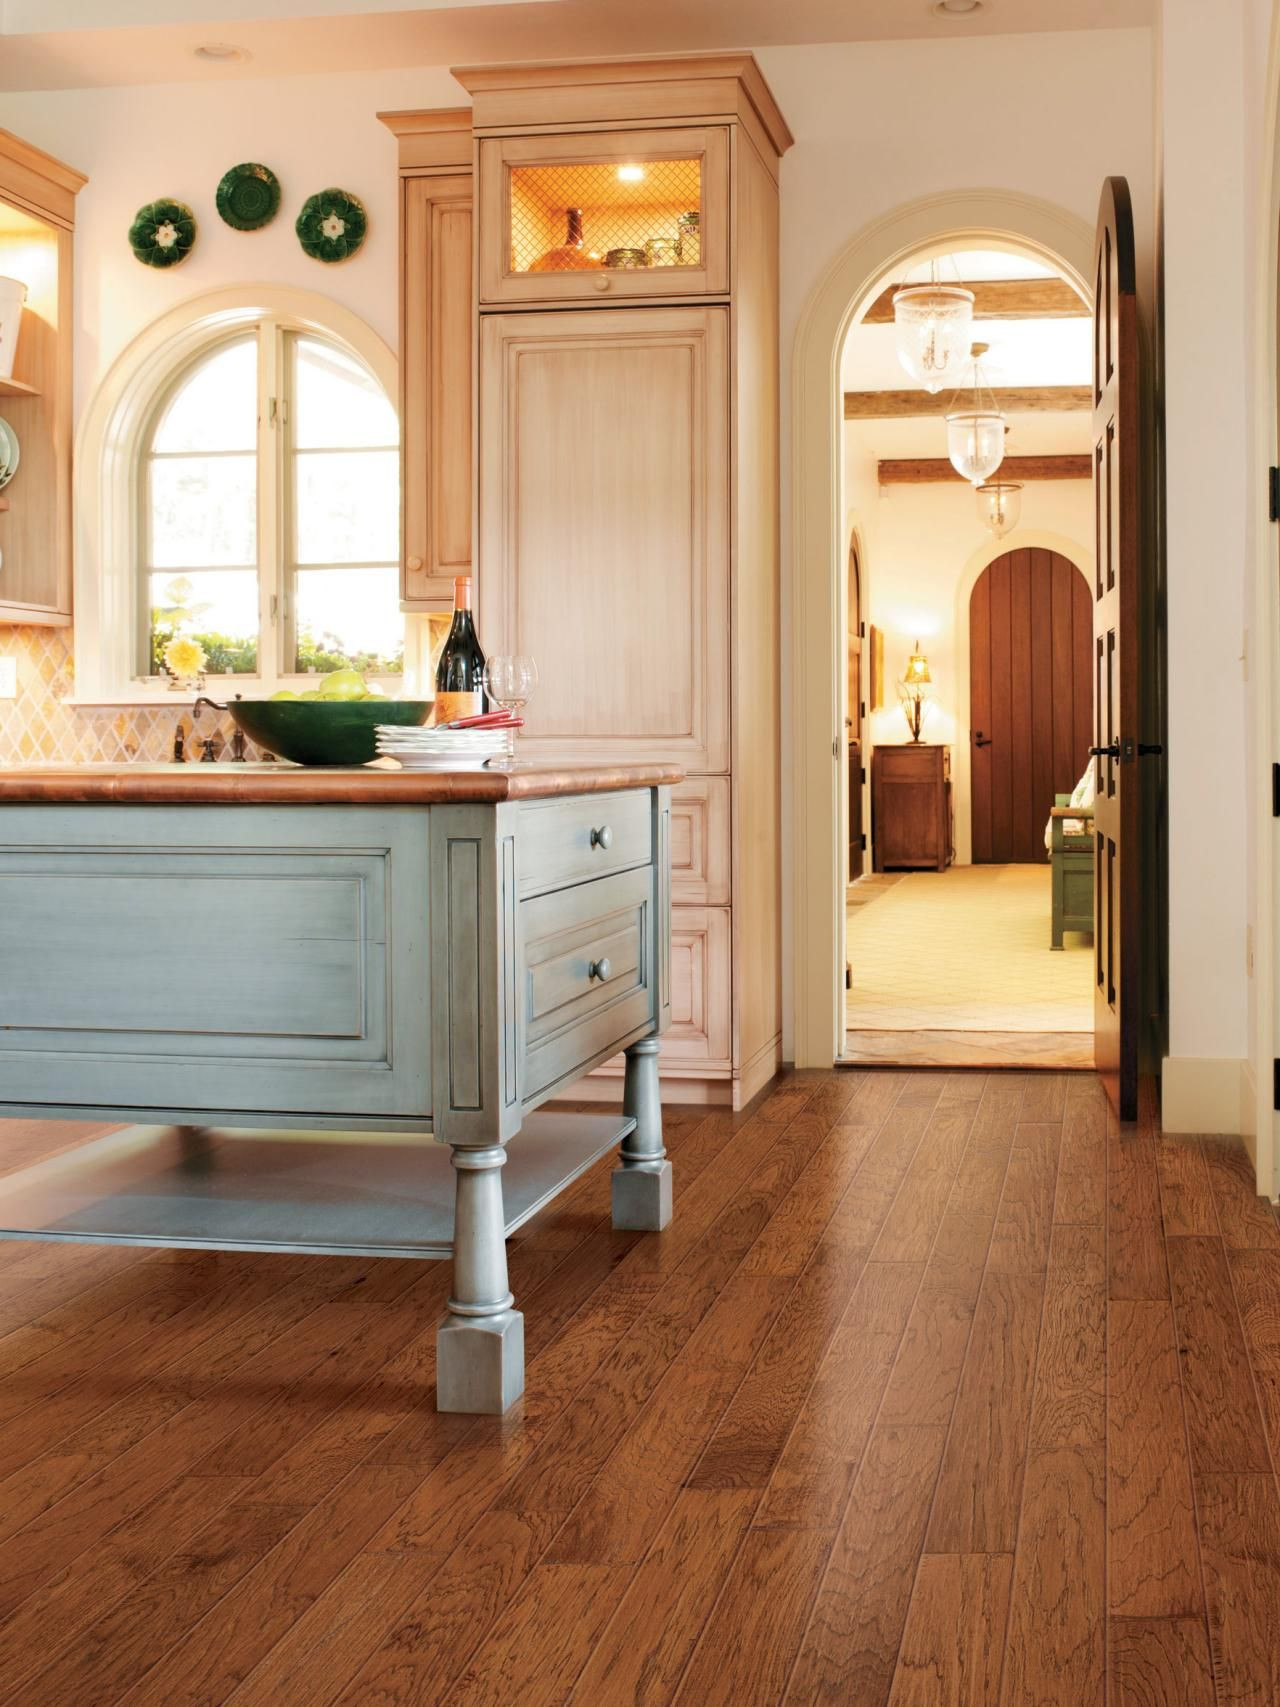 bay hardwood flooring of laminate flooring in the kitchen hgtv laminate flooring and for laminate flooring in the kitchen kitchen designs choose kitchen layouts remodeling materials hgtv